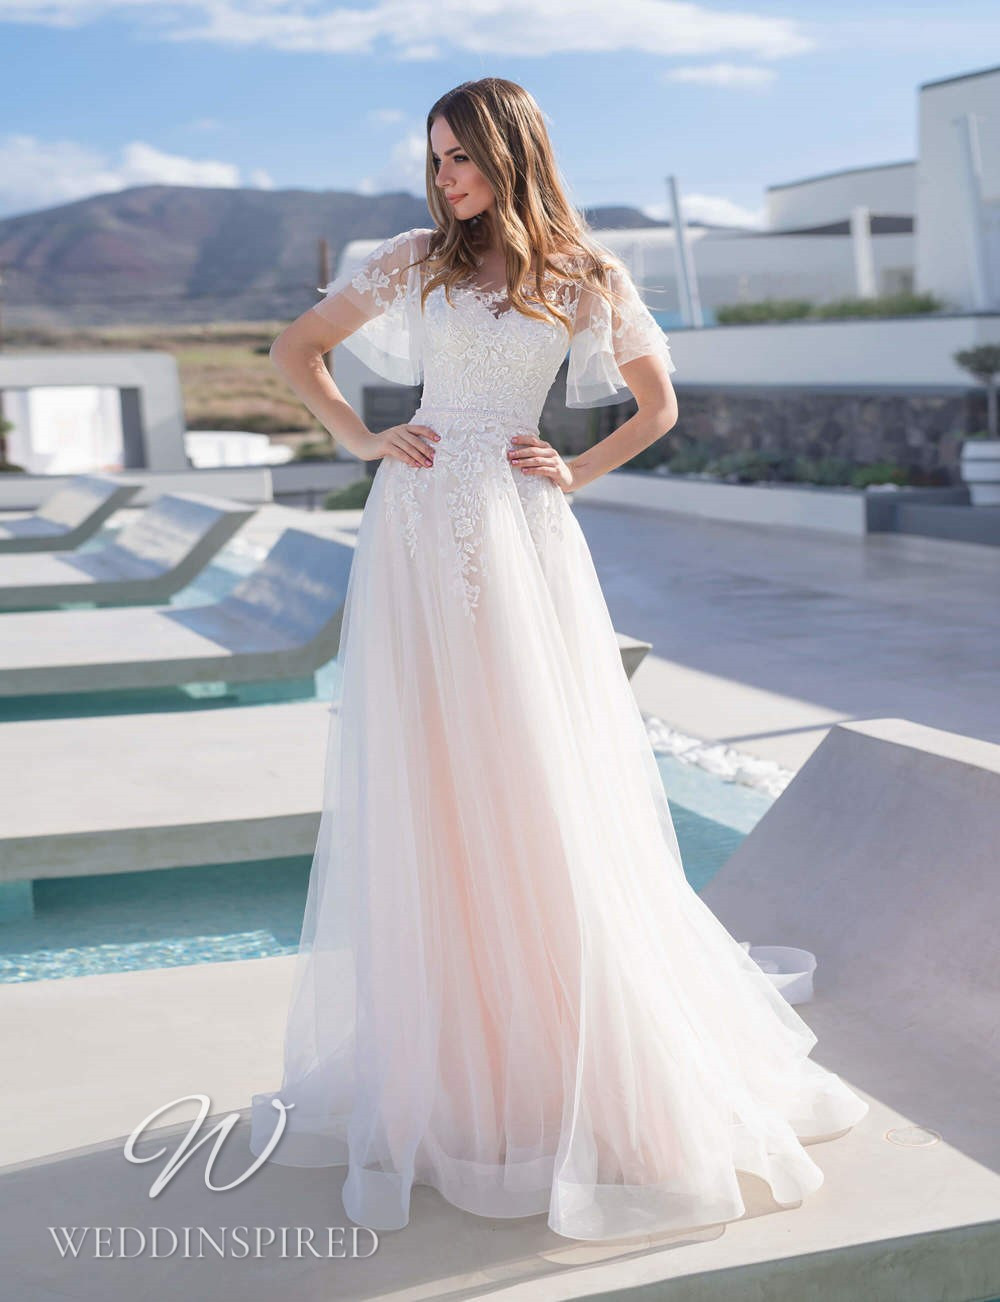 A Blunny 2021 blush lace and tulle A-line wedding dress